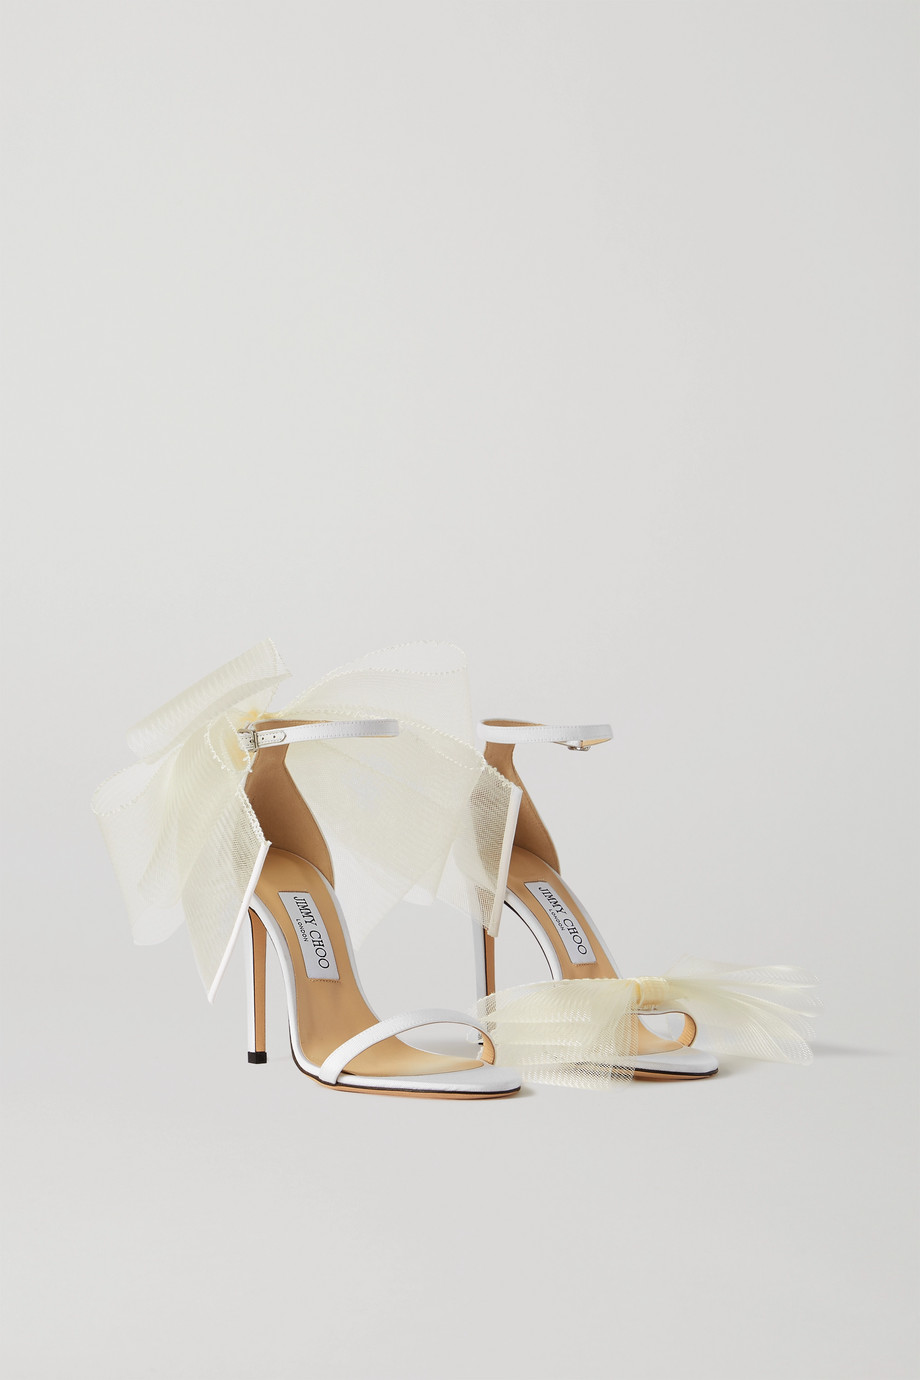 Jimmy Choo Aveline 100 bow-embellished grosgrain sandals